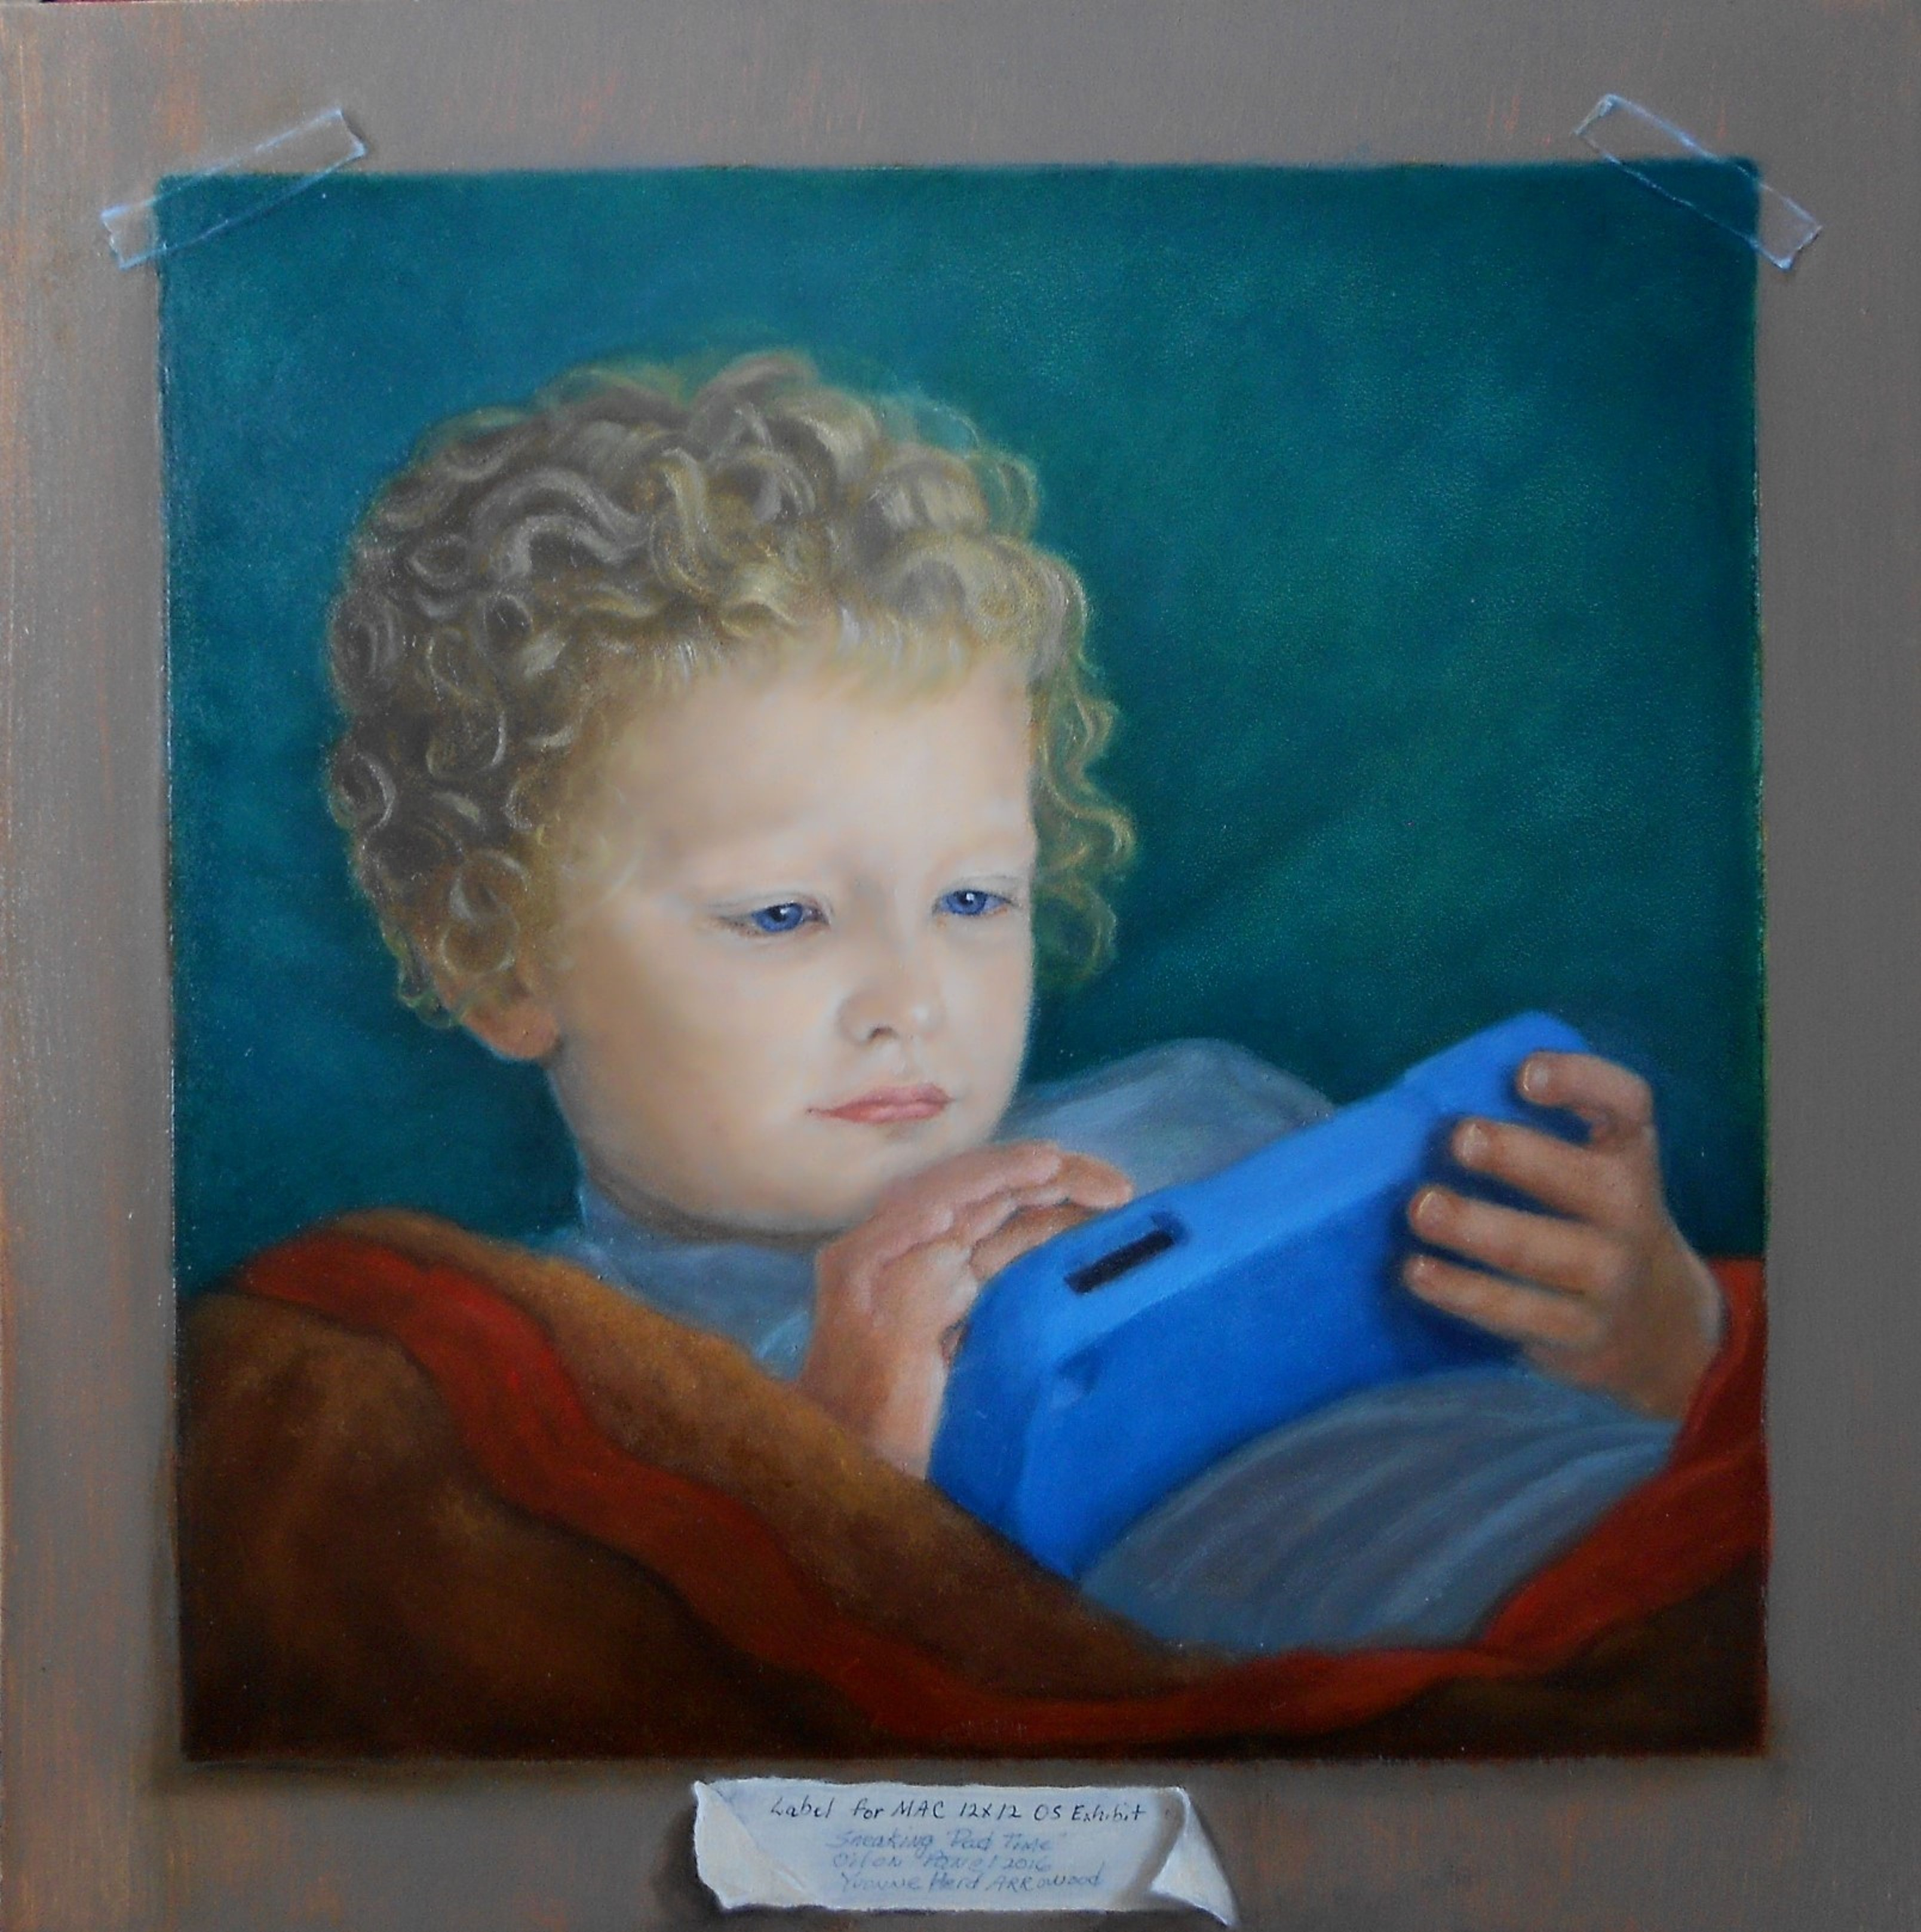 Henry Stealing Pad Time by Yvonne Herd Arrowood